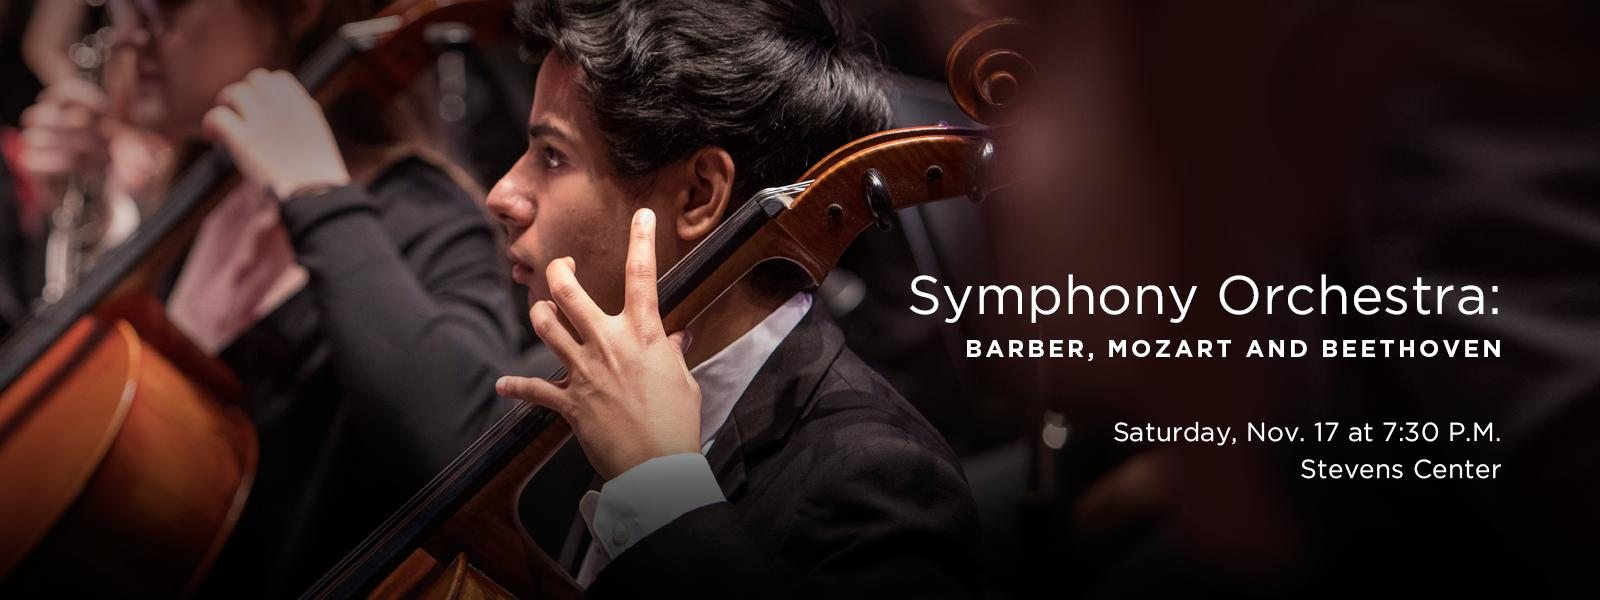 Maestro Joseph Young leads the UNCSA Symphony Orchestra in an exciting array of masterworks. >> BUY TICKETS